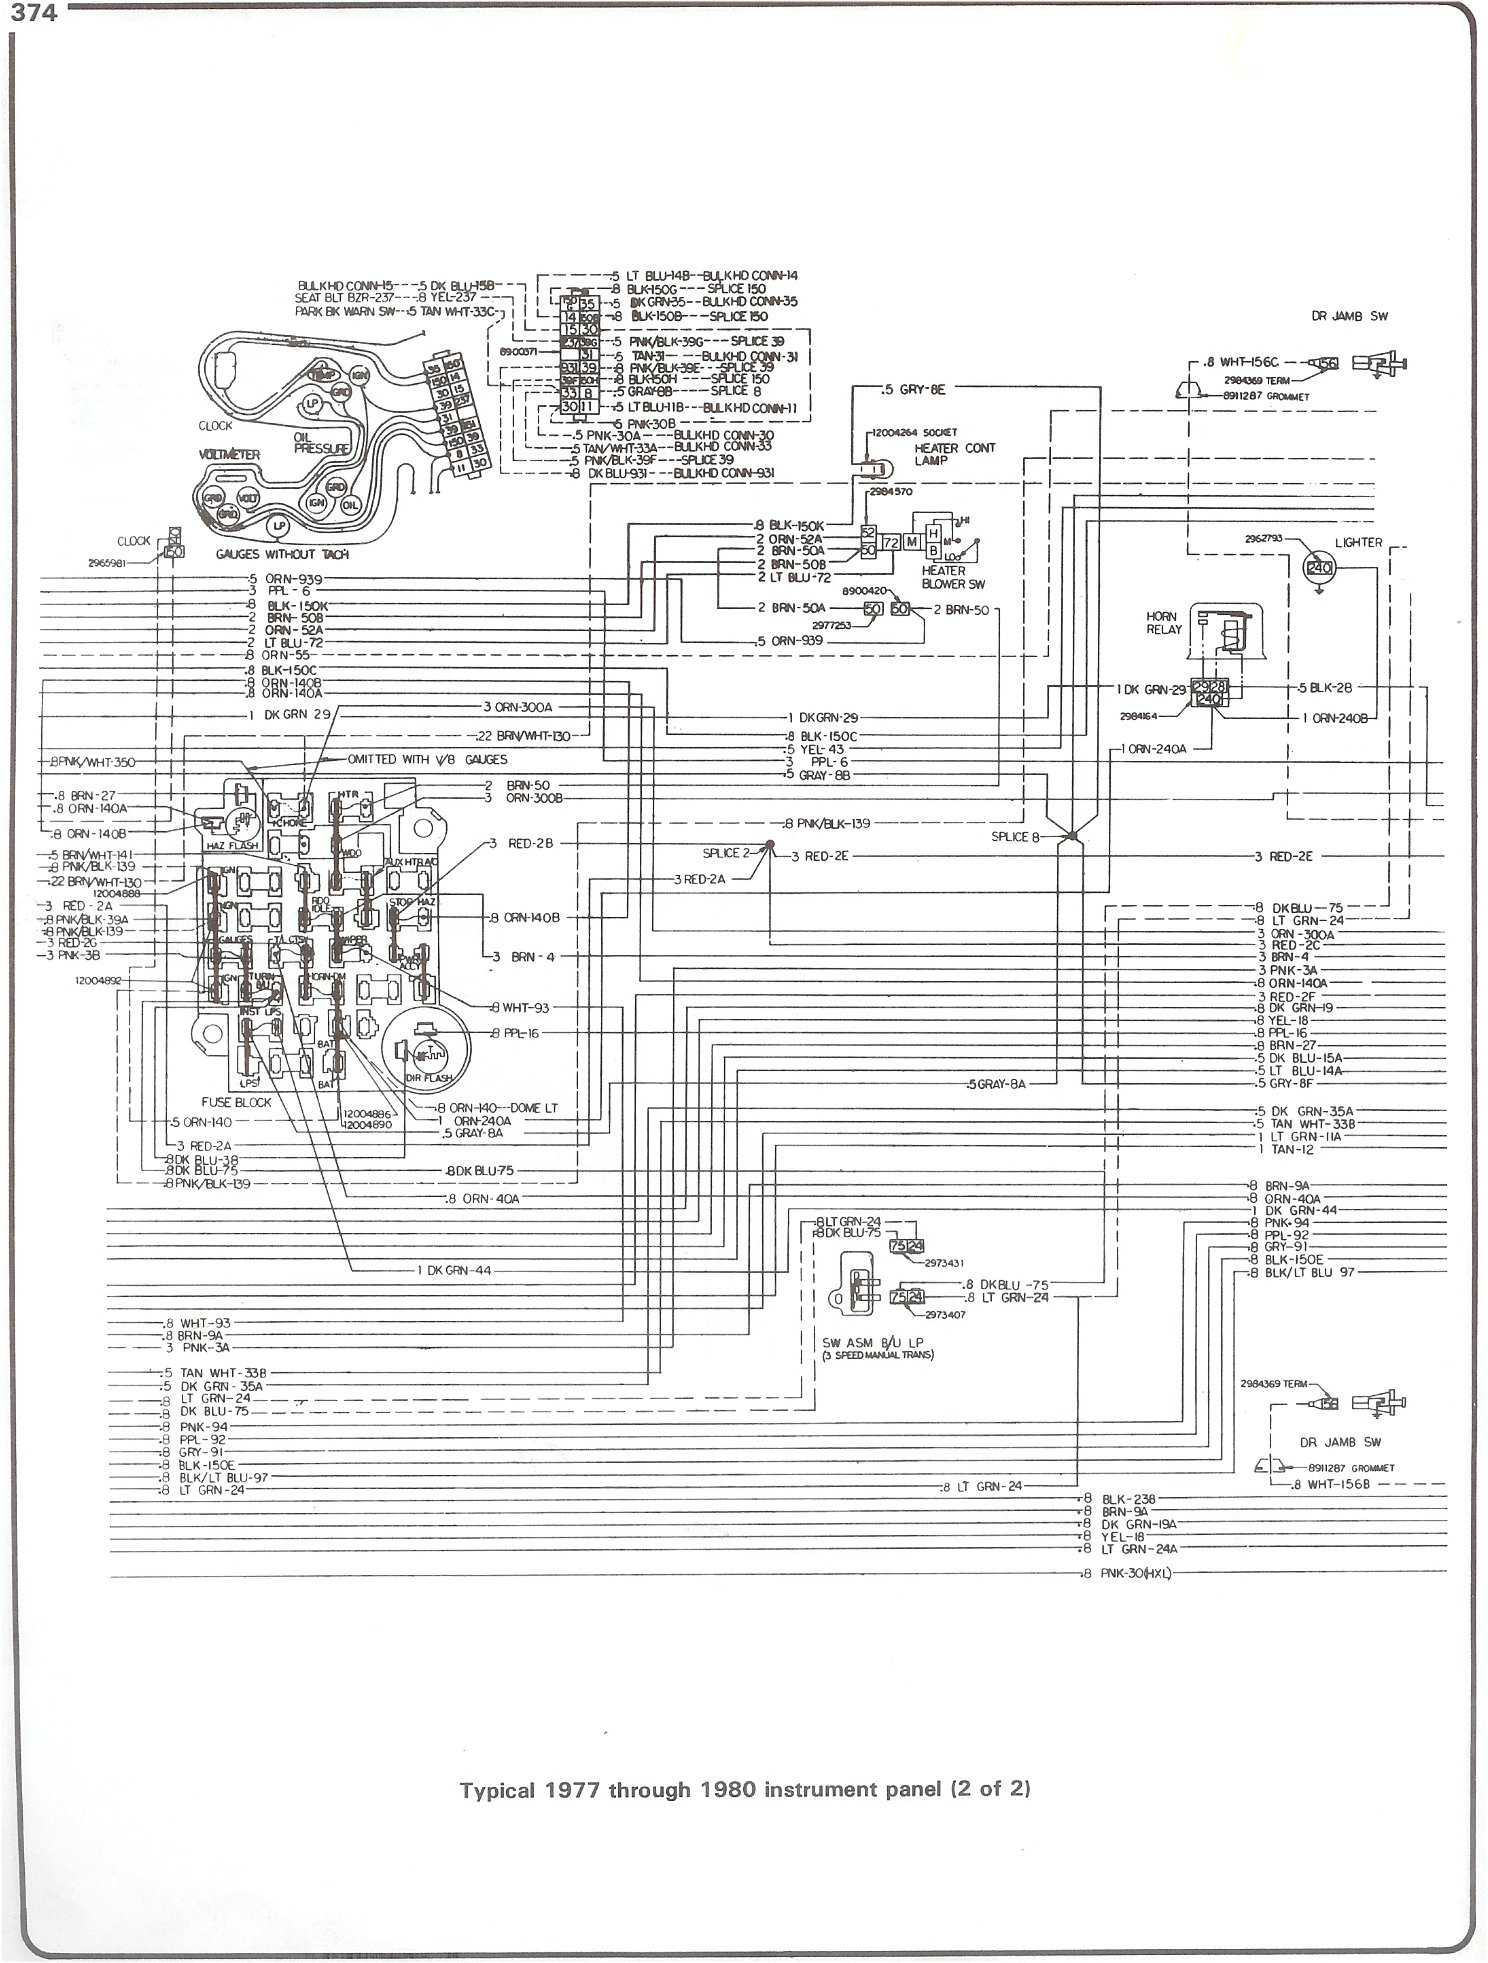 77 80_instrument_pg2 complete 73 87 wiring diagrams 1988 GMC Sierra 1500 at virtualis.co